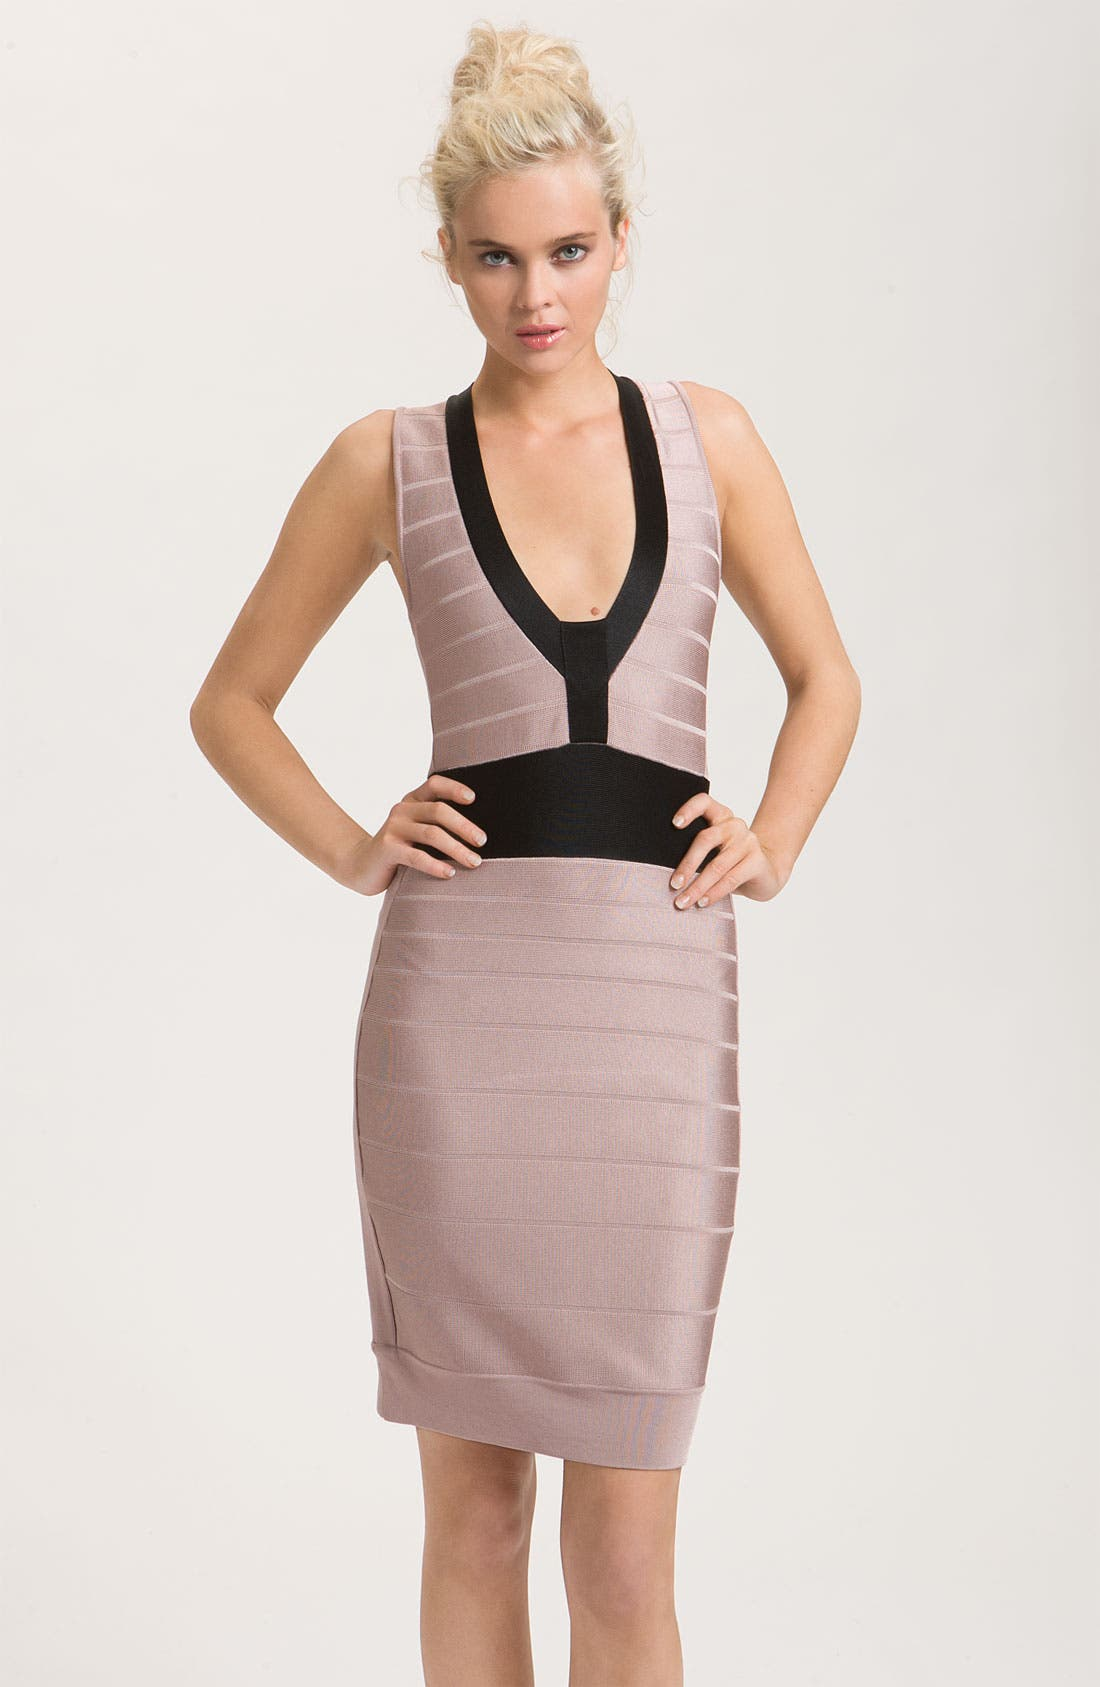 Alternate Image 1 Selected - French Connection 'Ribbon Knits' Banded Dress